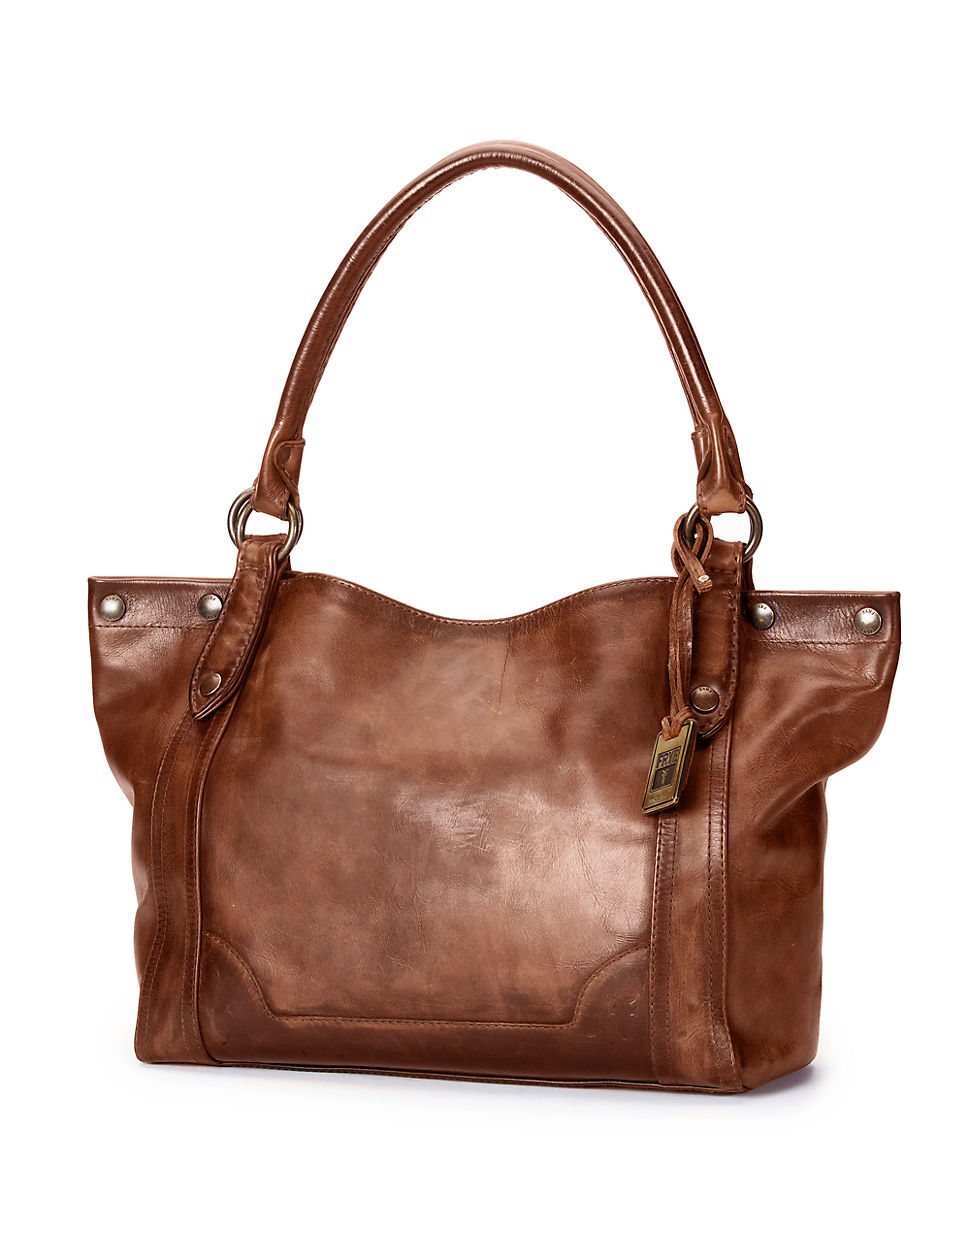 Jimmy Choo Tulita Coffee Brown Ostrich Skin Leather Shoulder Bag. Current Bid: $ Pickup Available Vintage Brown Faux Leather Satchel and Front Flap Shoulder Bag. Current Bid: $0. Pickup Available Ralph Lauren Burnt Orange Suede Fold-Over Shoulder Bag.